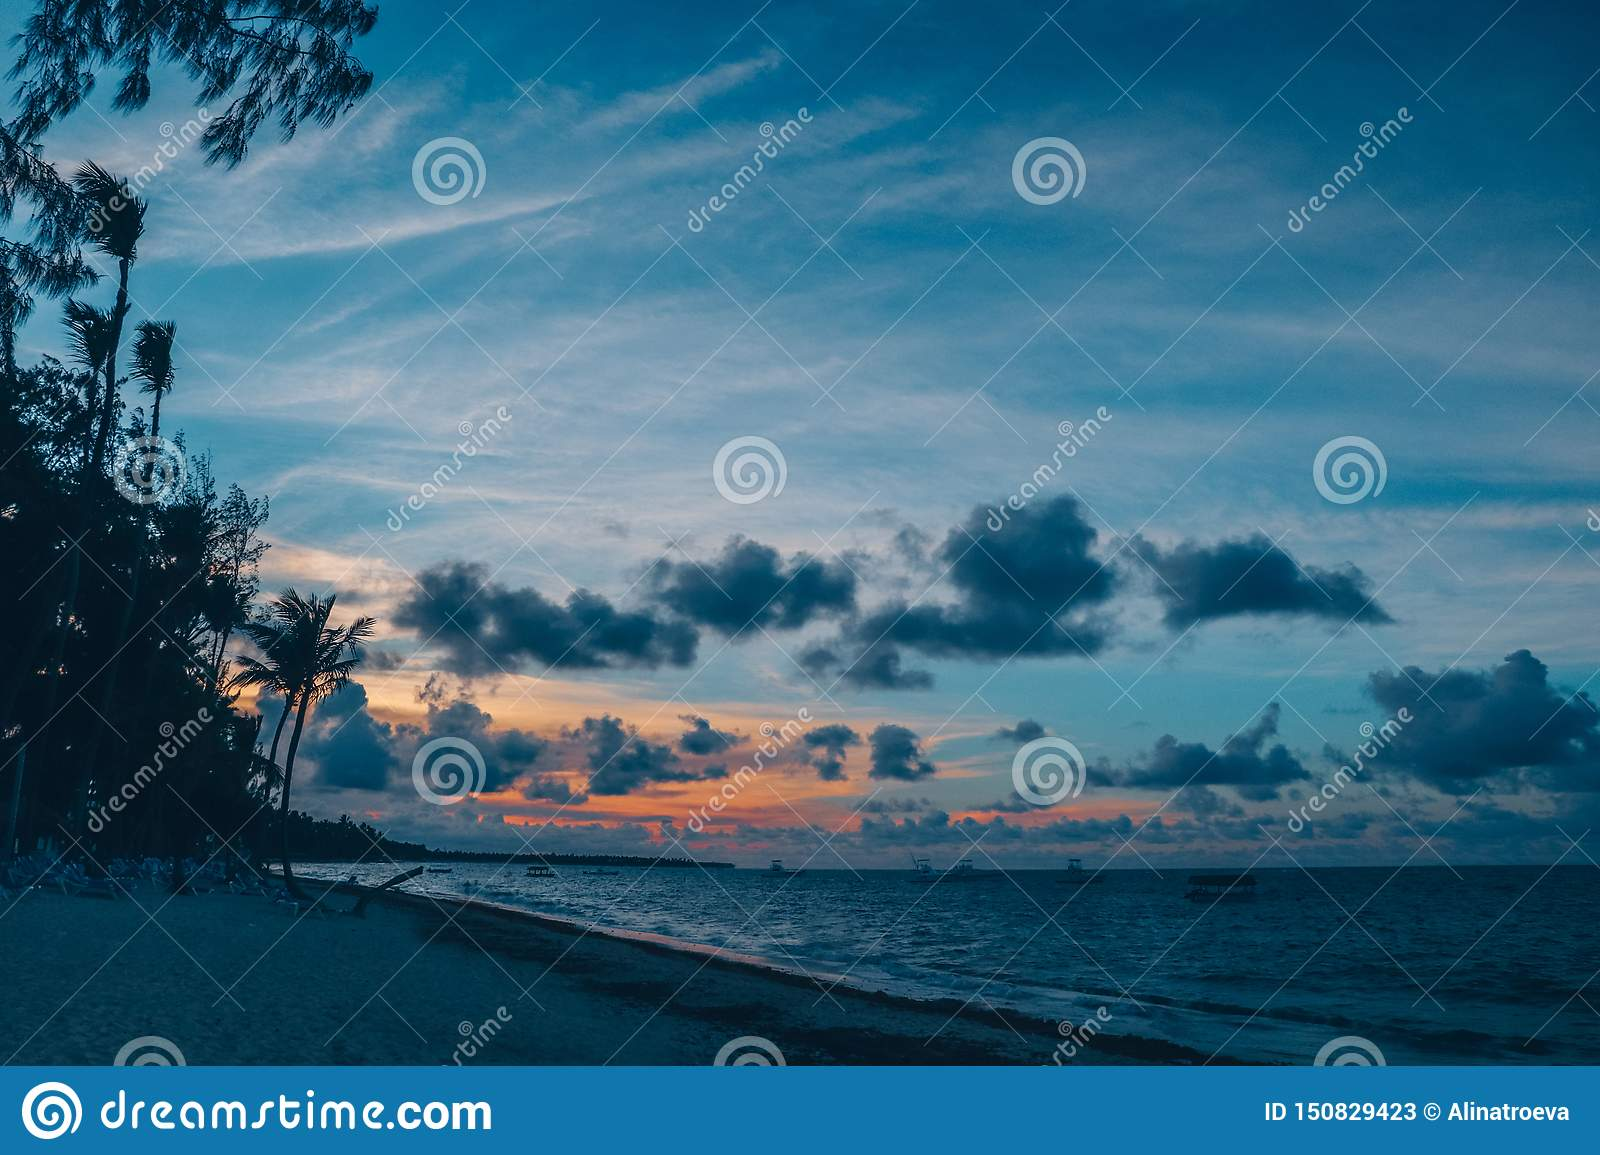 Panoramic sunset view of the tropical beach, ocean, and blue sky